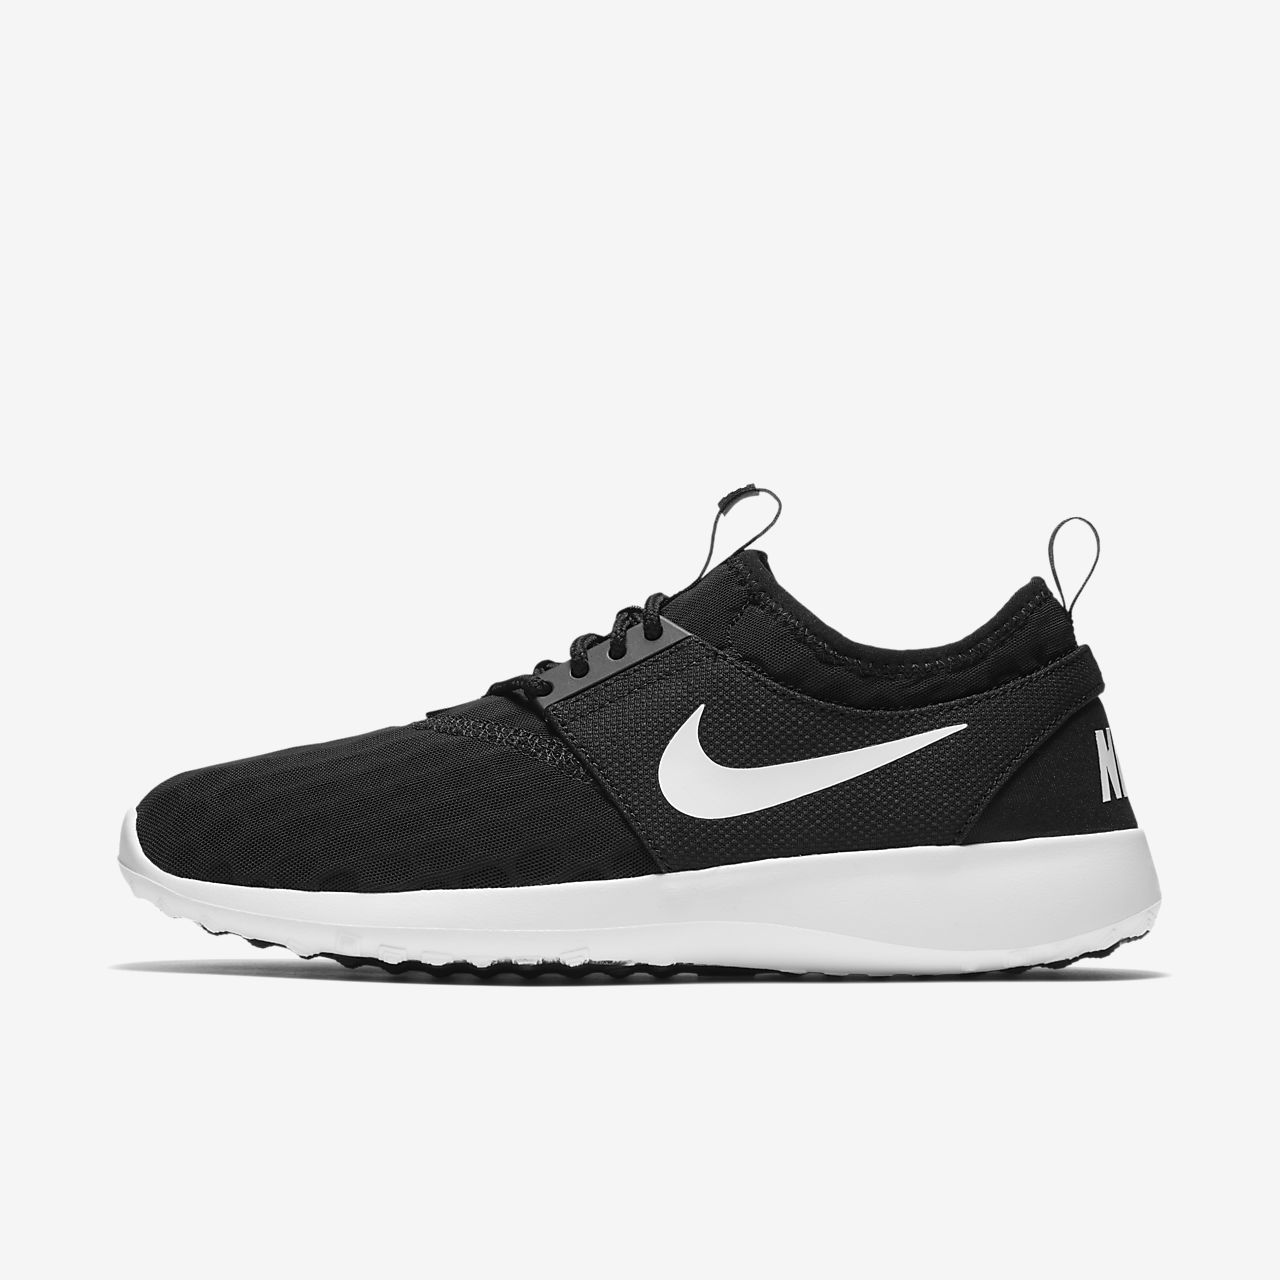 a1288086f Nike Juvenate Women s Shoe. Nike.com